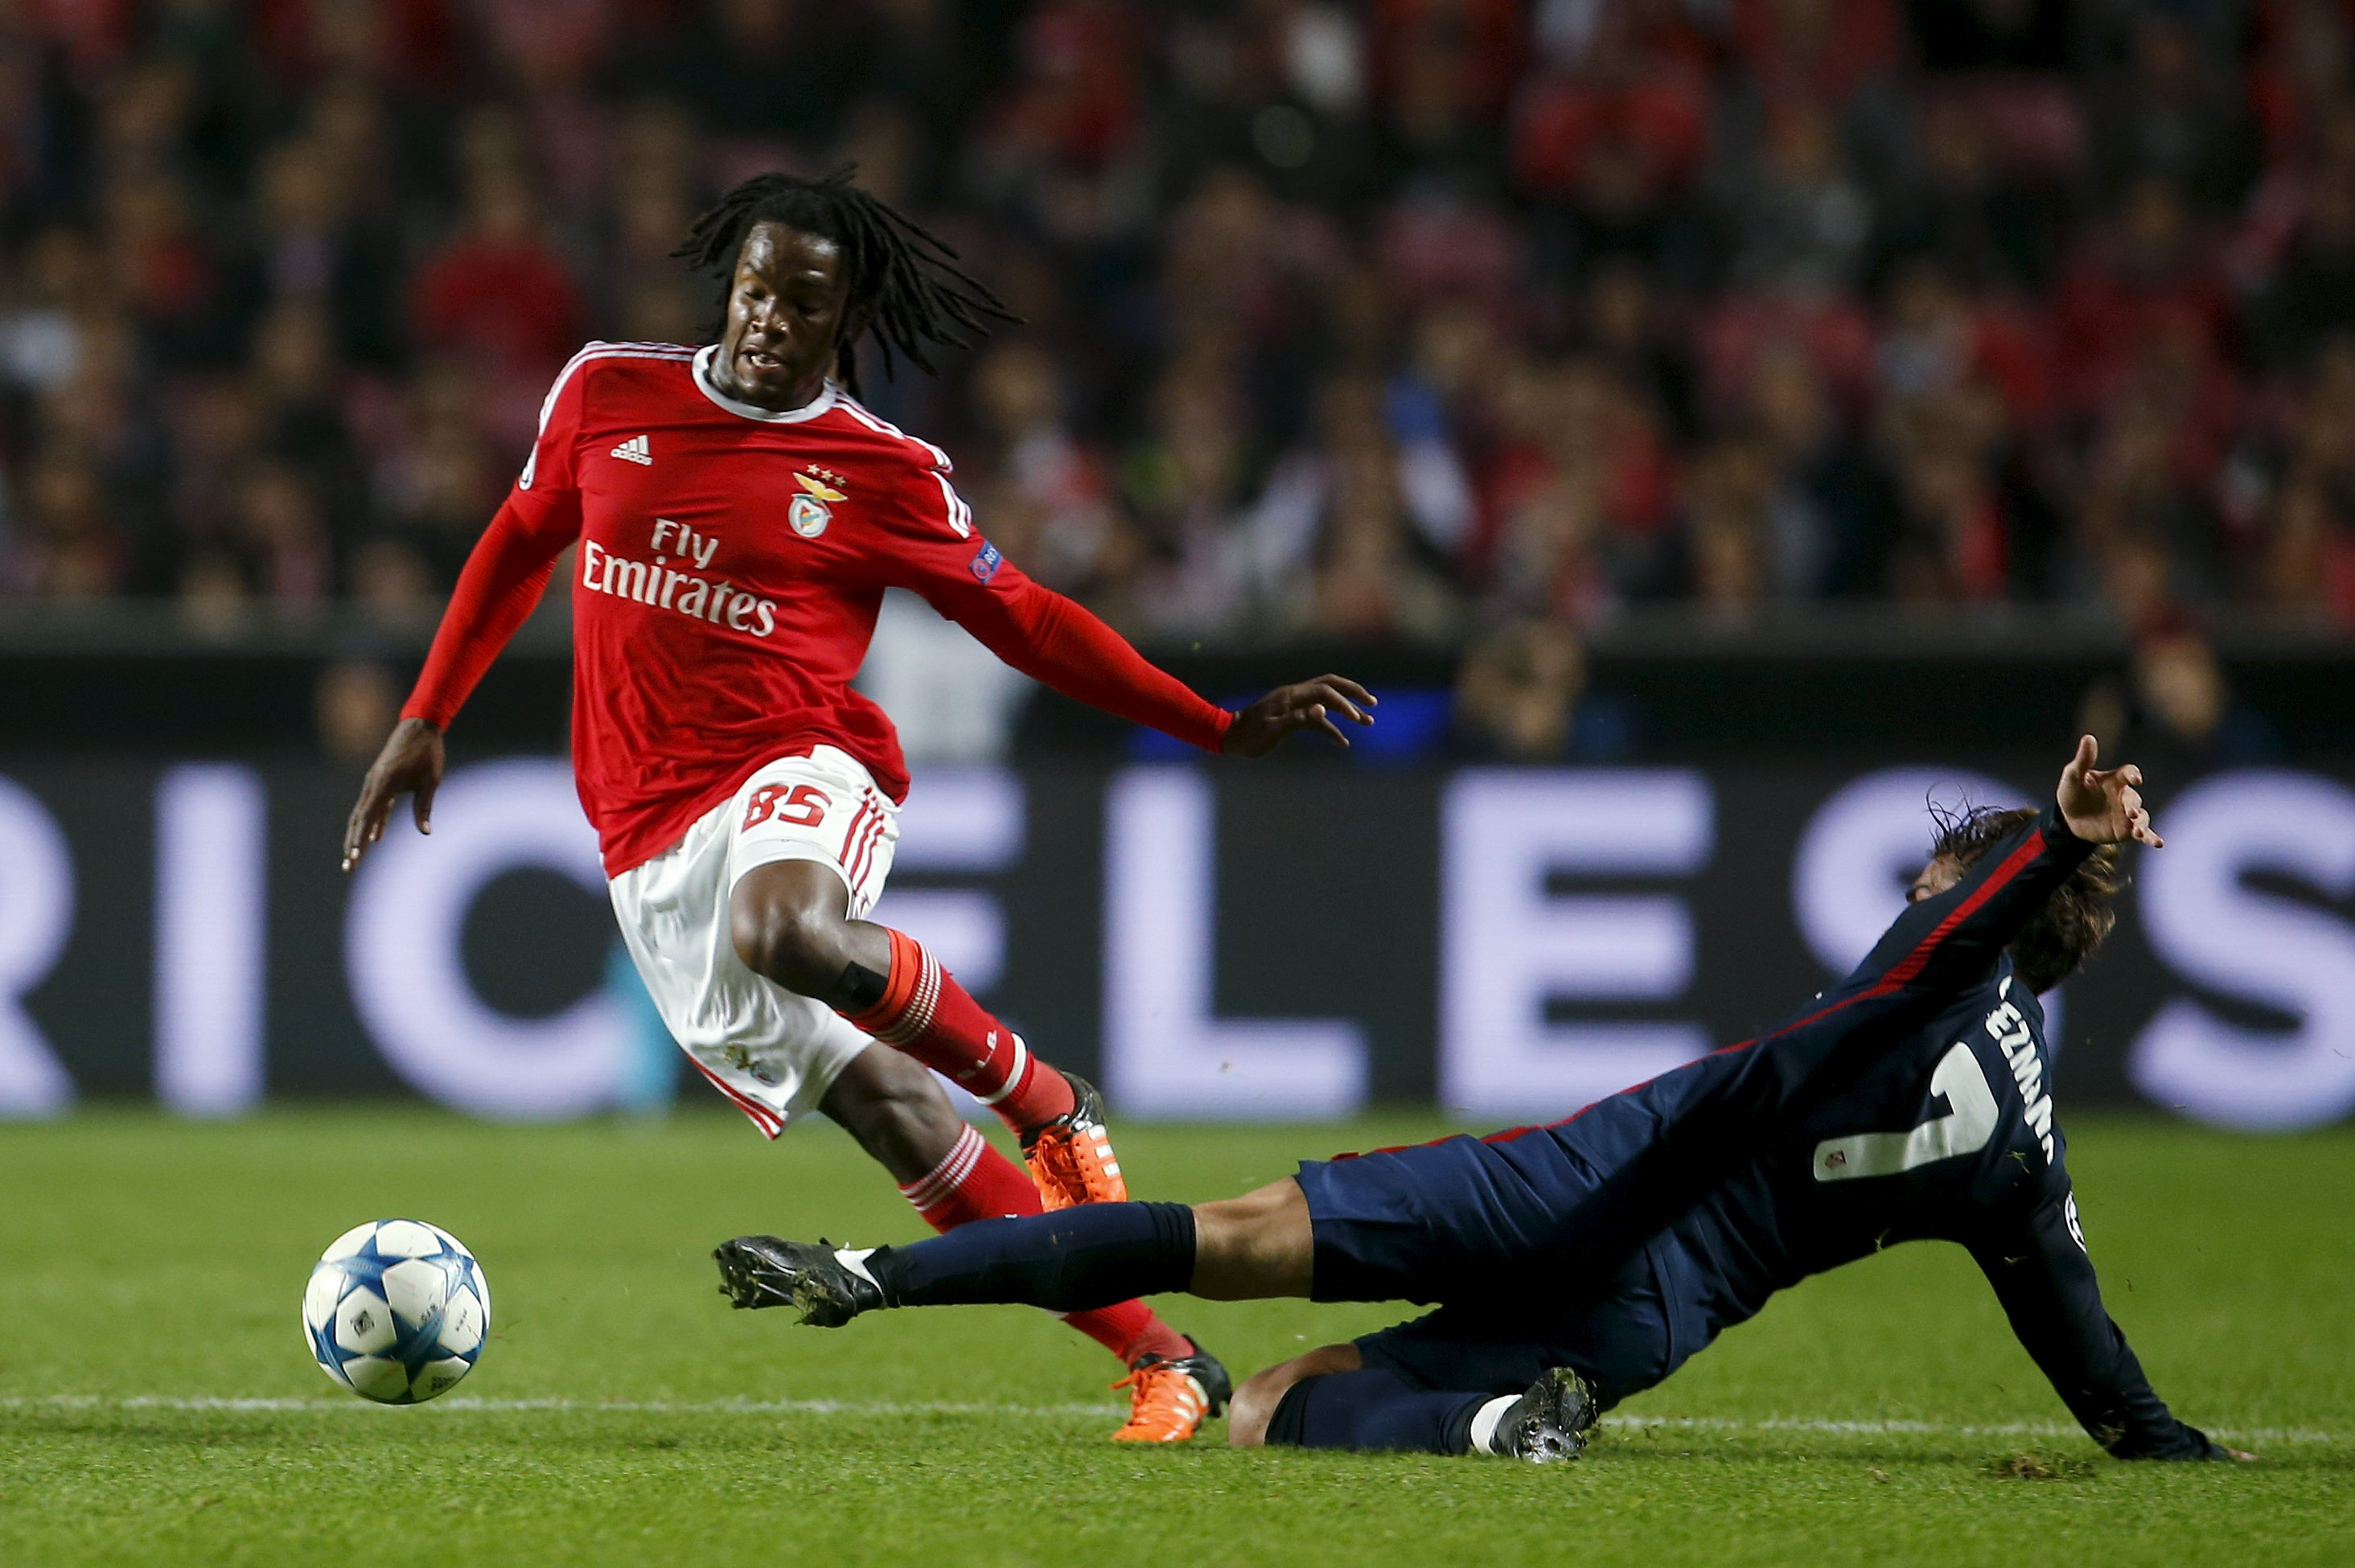 Benfica's Renato Sanches (left) in action against Atletico Madrid's Antoine Griezmann during UEFA Champions League game at Luz Stadium on Tuesday, December 8, 2015. Photo: Reuters